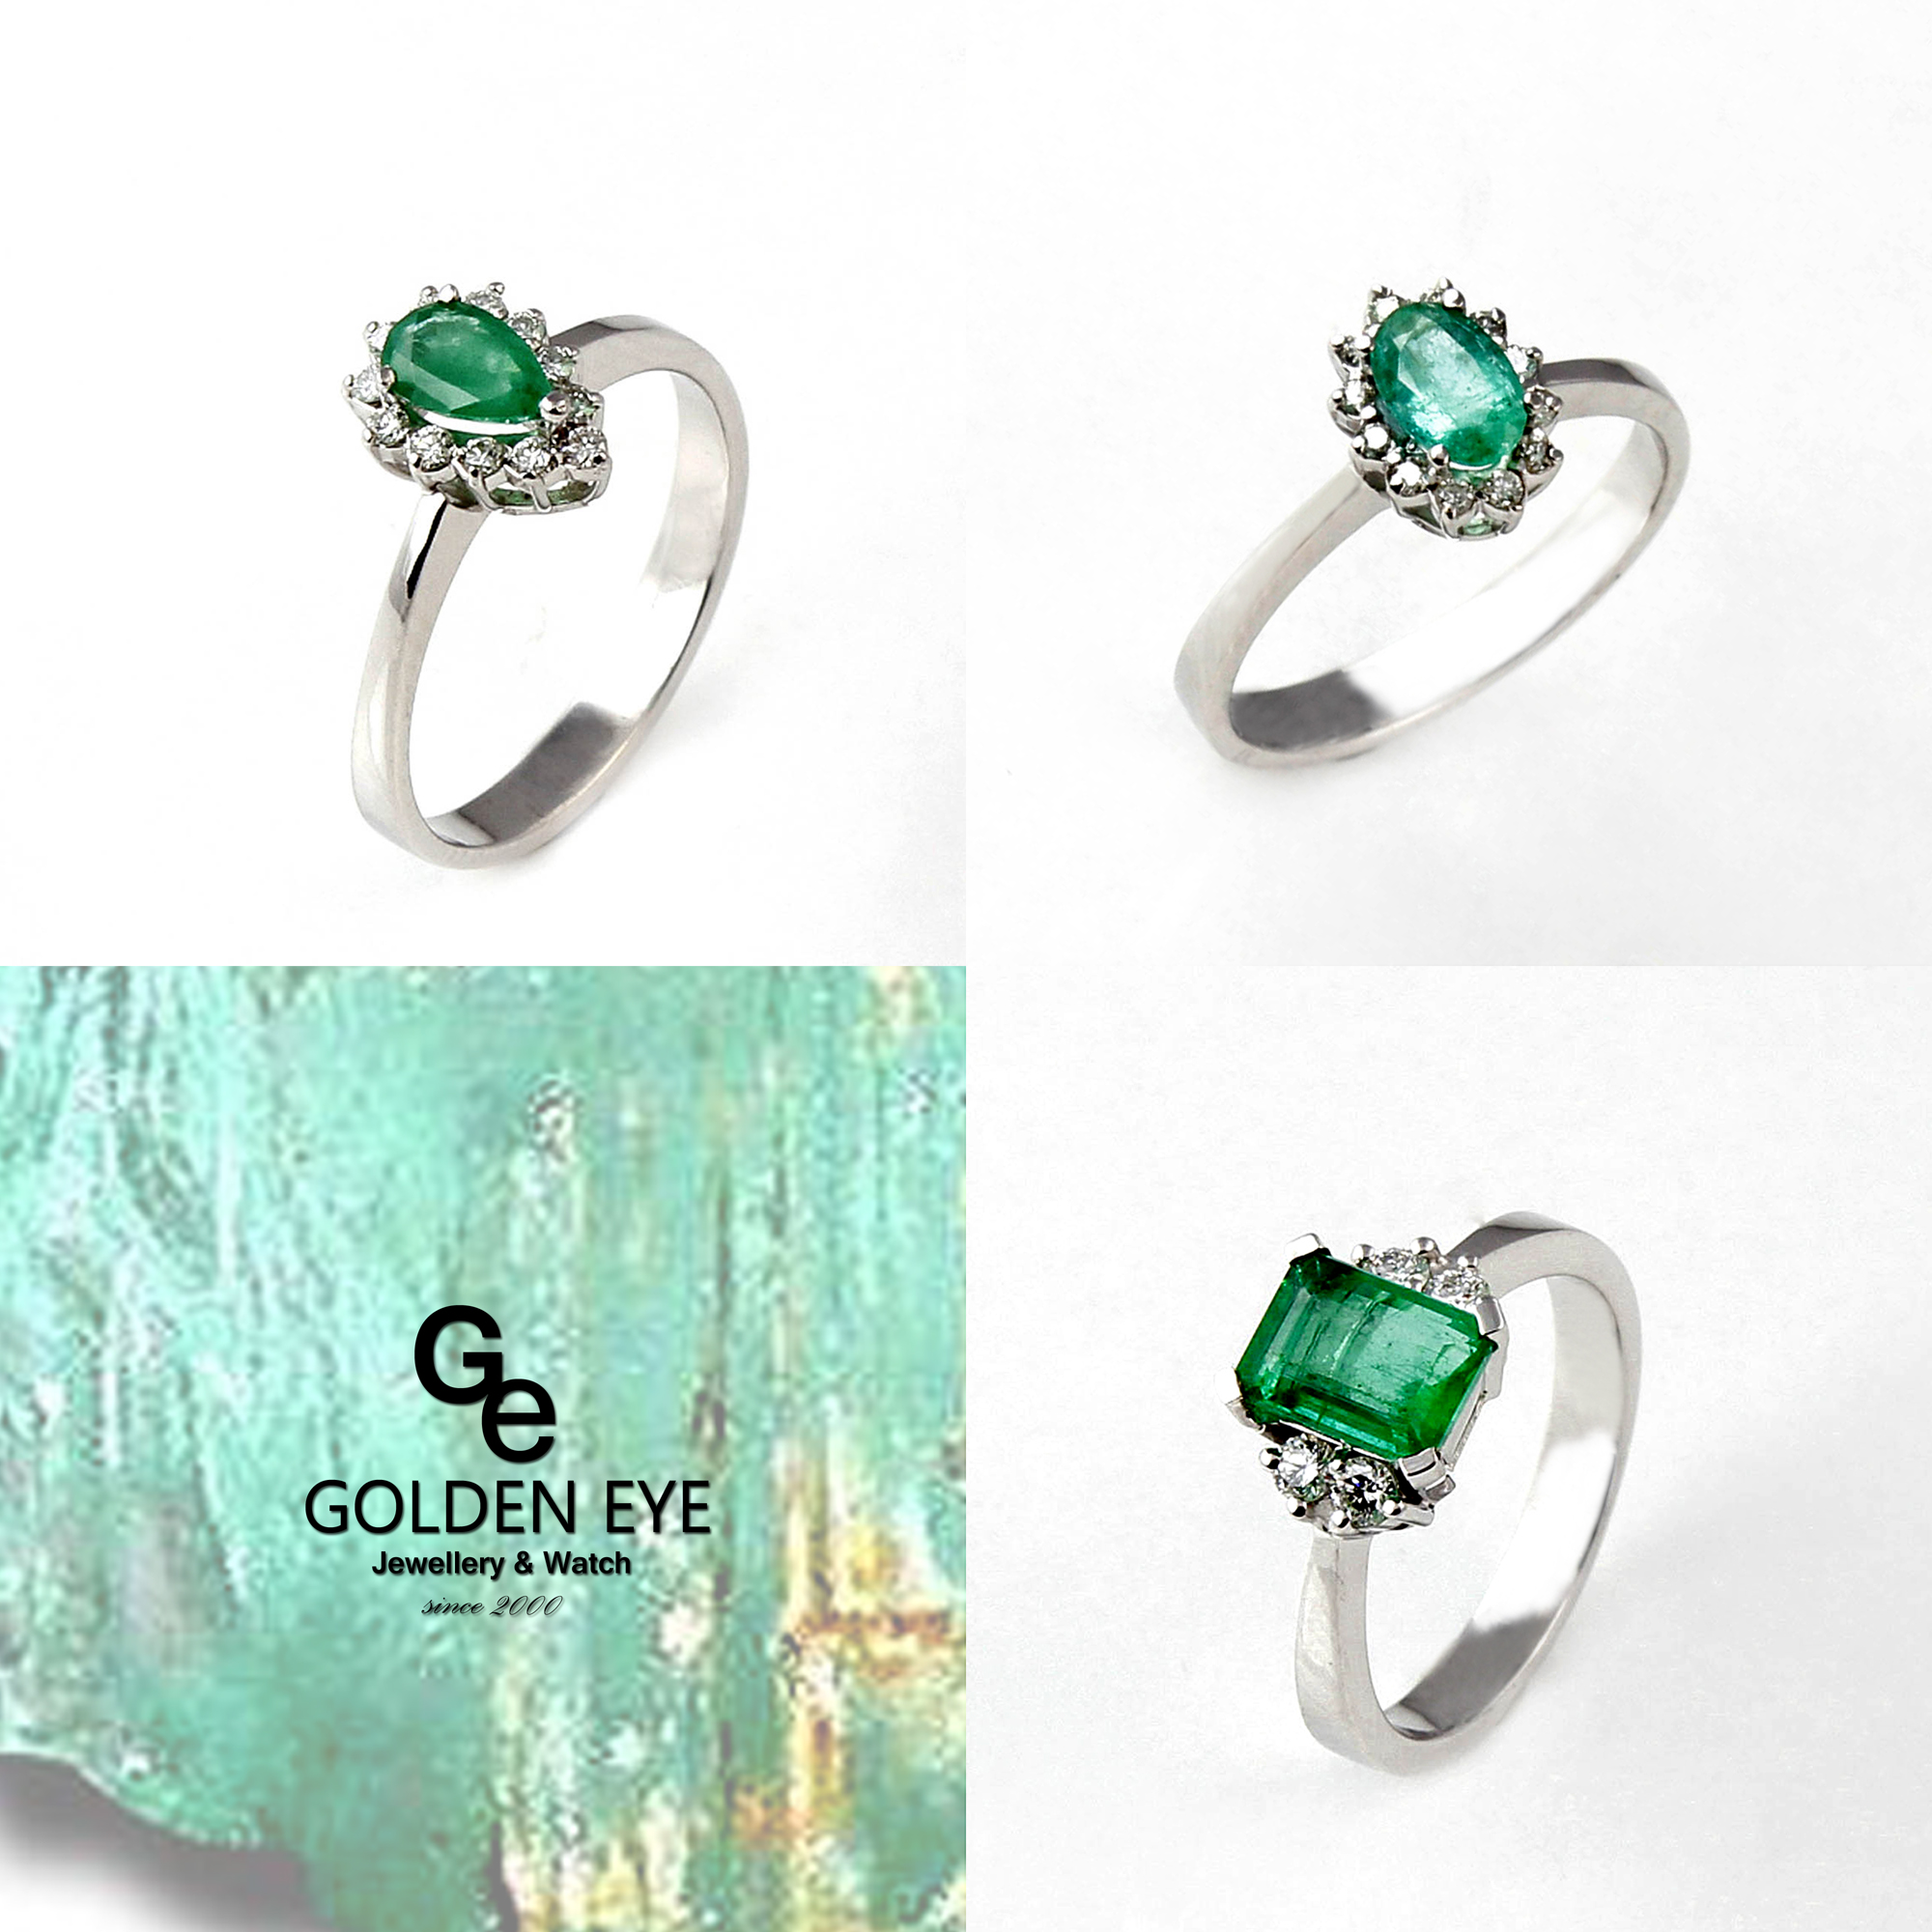 s colombian emerald fine with gold carat made suspended most golden from pin the statue it and expensive